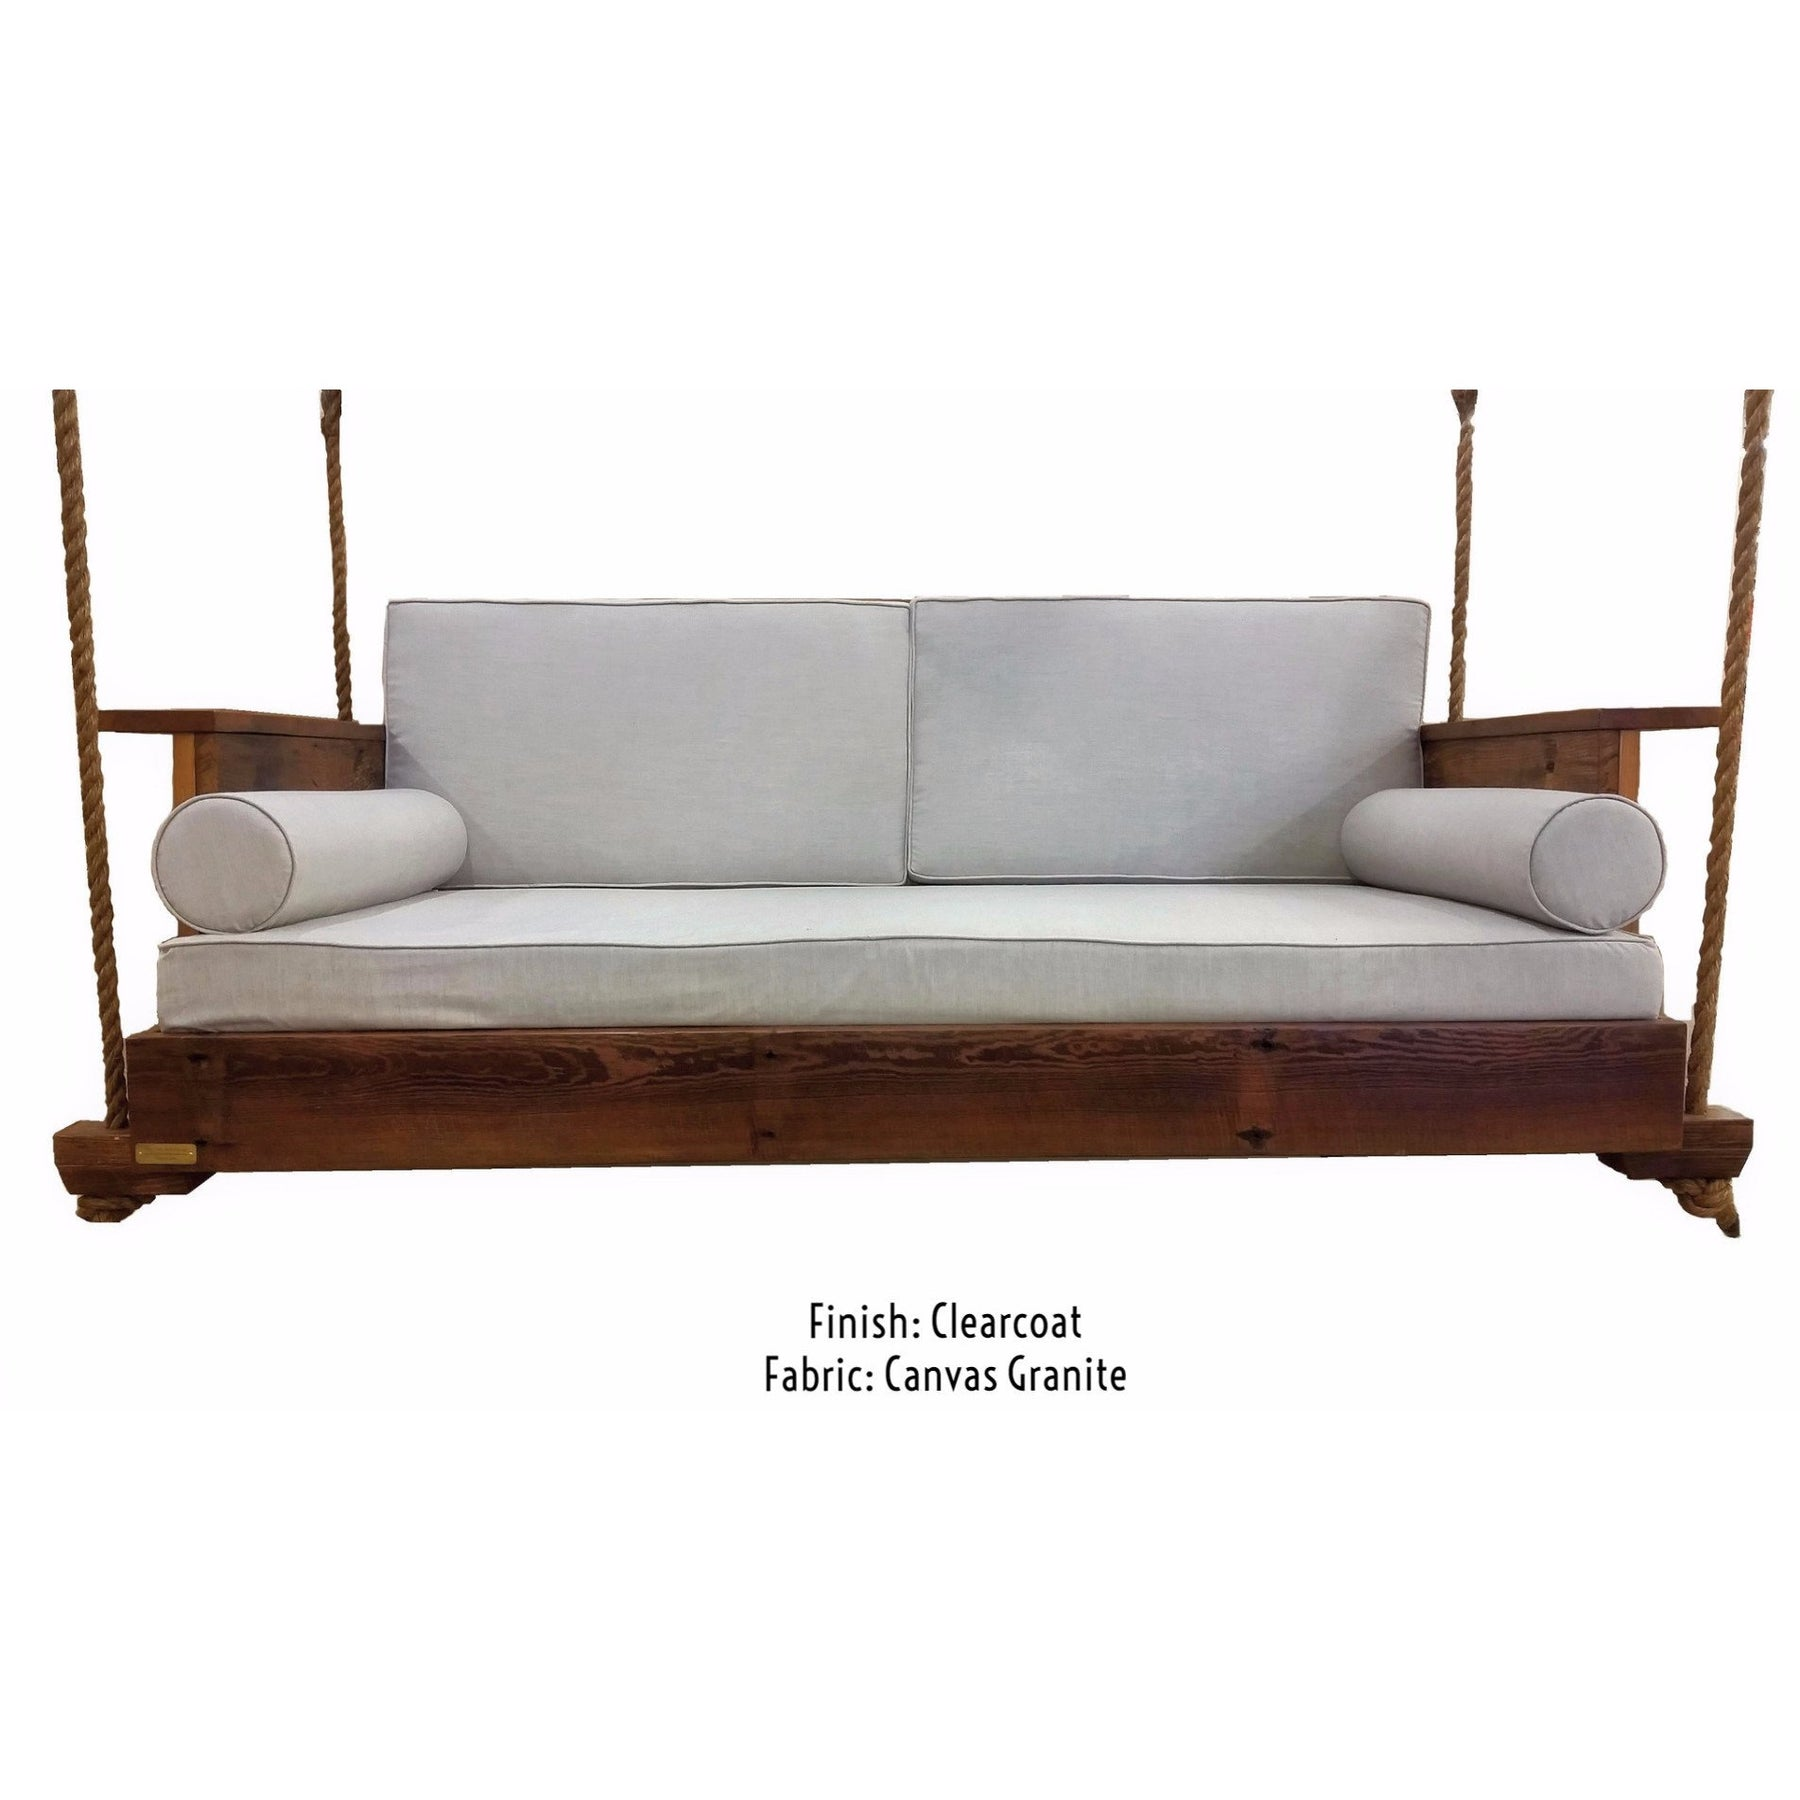 The R R Bed Swing Reclaimed Wood Bed Swing Free Shipping